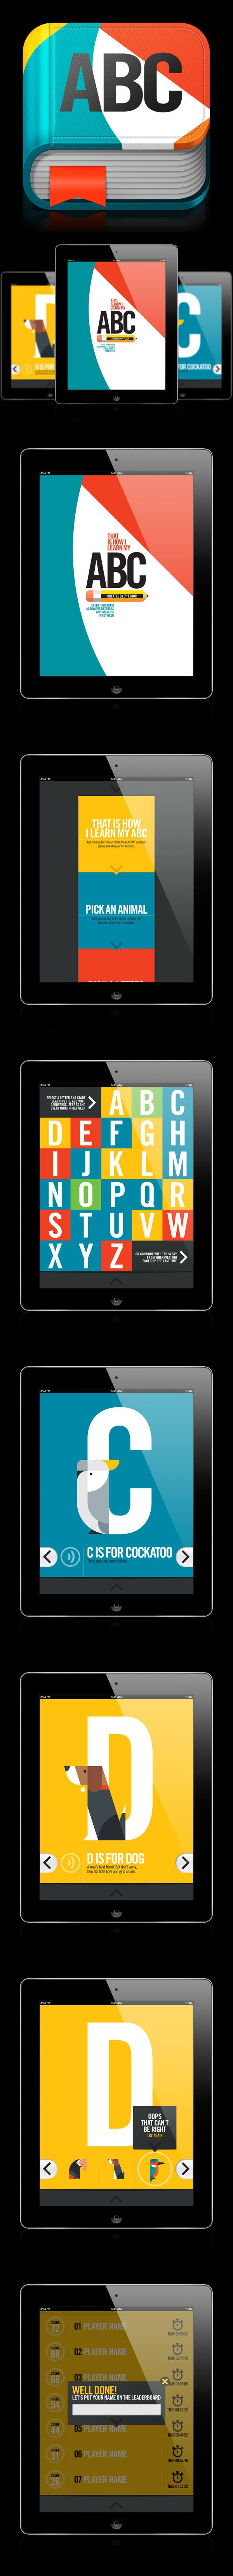 ABC iPad #App by Bart De Keyzer, via Behance *** The design for an educational iPad application based on my ABC Project. Next to an interactive version of the book I designed earlier the application will feature 2 games. They should help children to learn the different letters in the alphabet in a playfull environment. Developement will take quite some time since this is a self initiated project which needs to be finished in between jobs, so keep watching this space for updates.